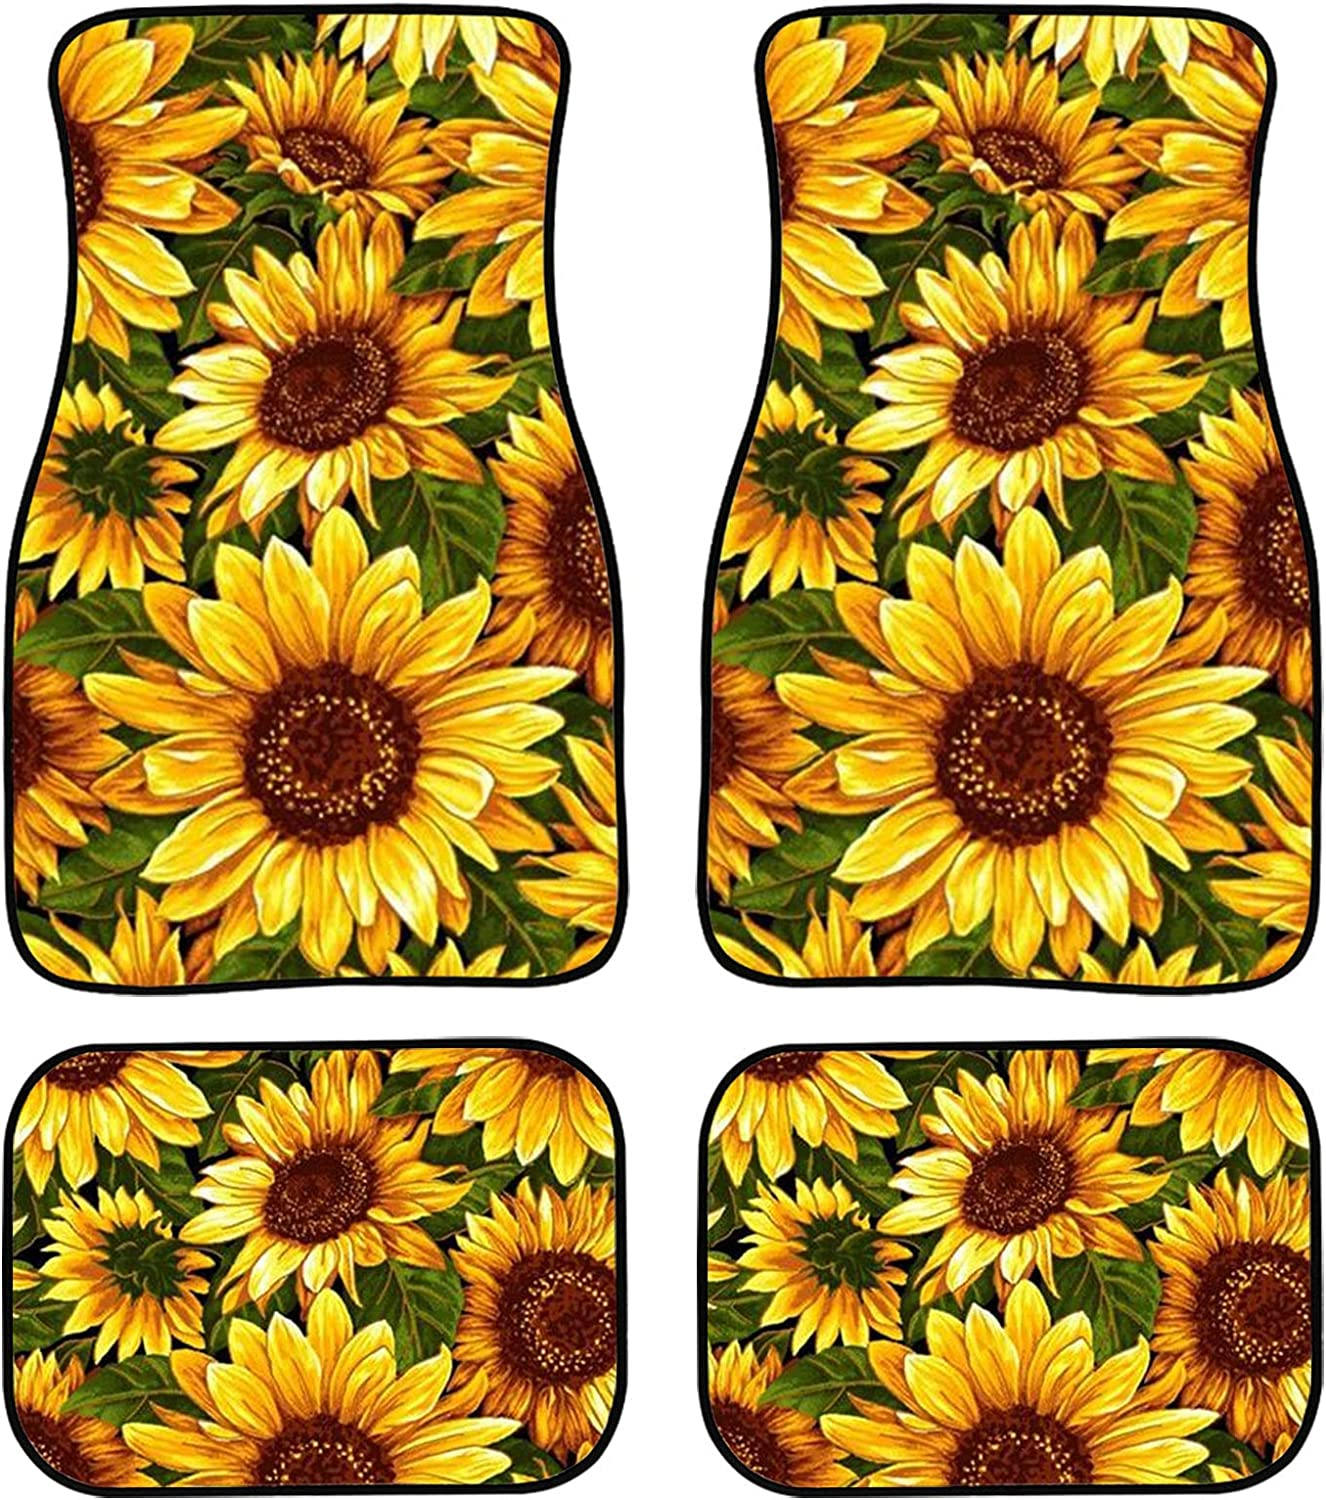 KUILIUPET Excellence Car Floor Mats Max 44% OFF Sunflowers for 4pcs Printed Auto